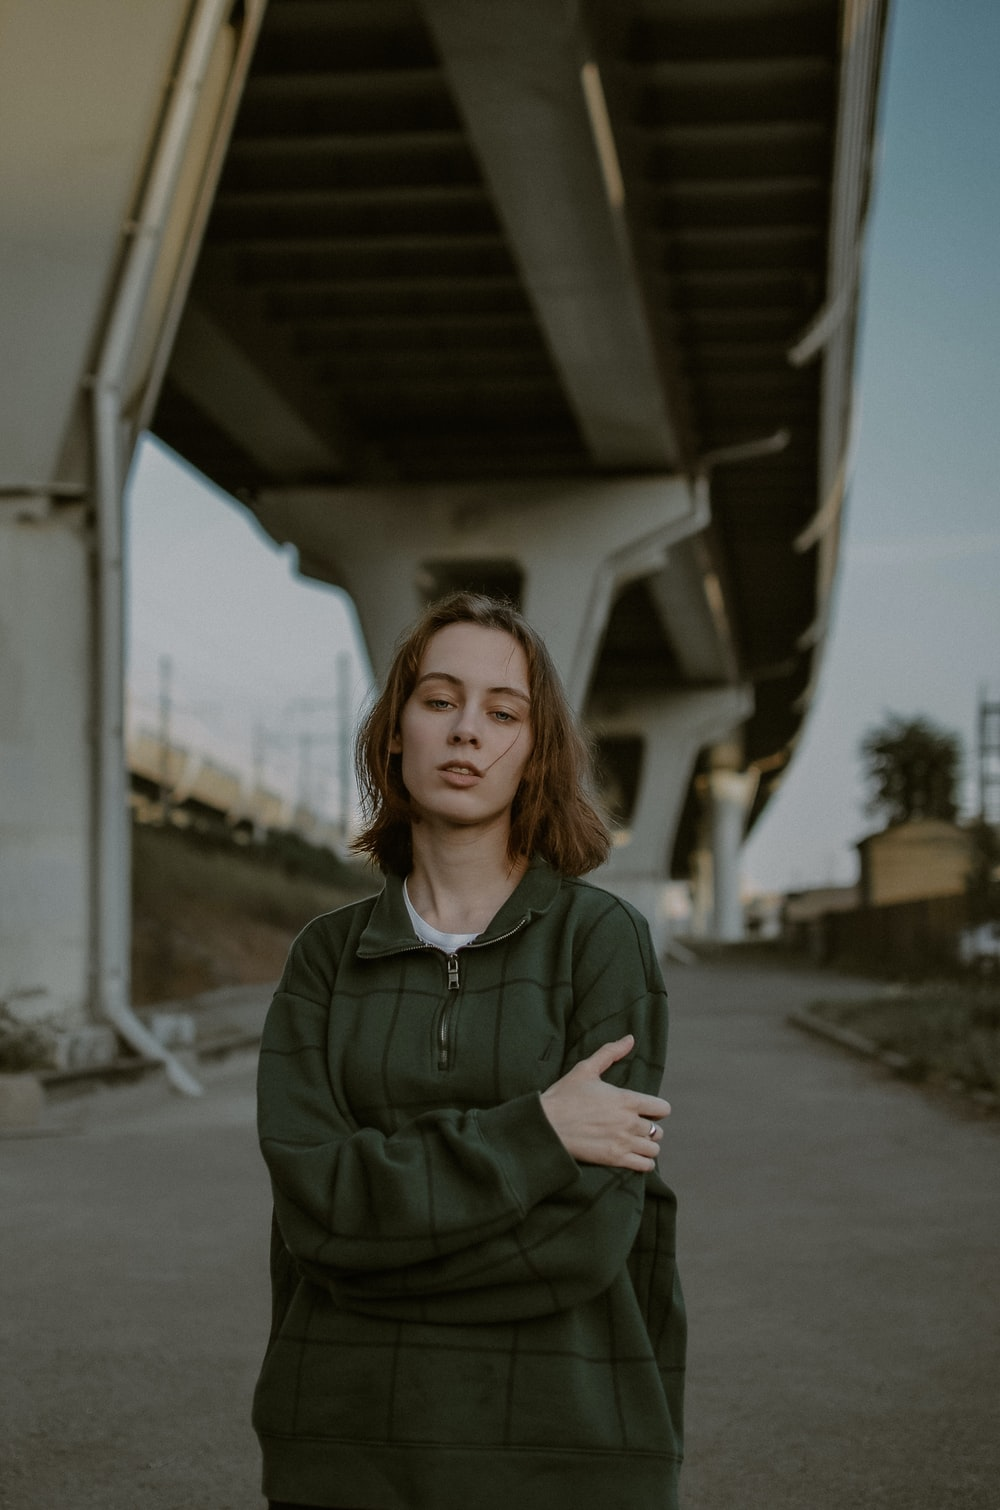 woman in green jacket standing on gray concrete road during daytime